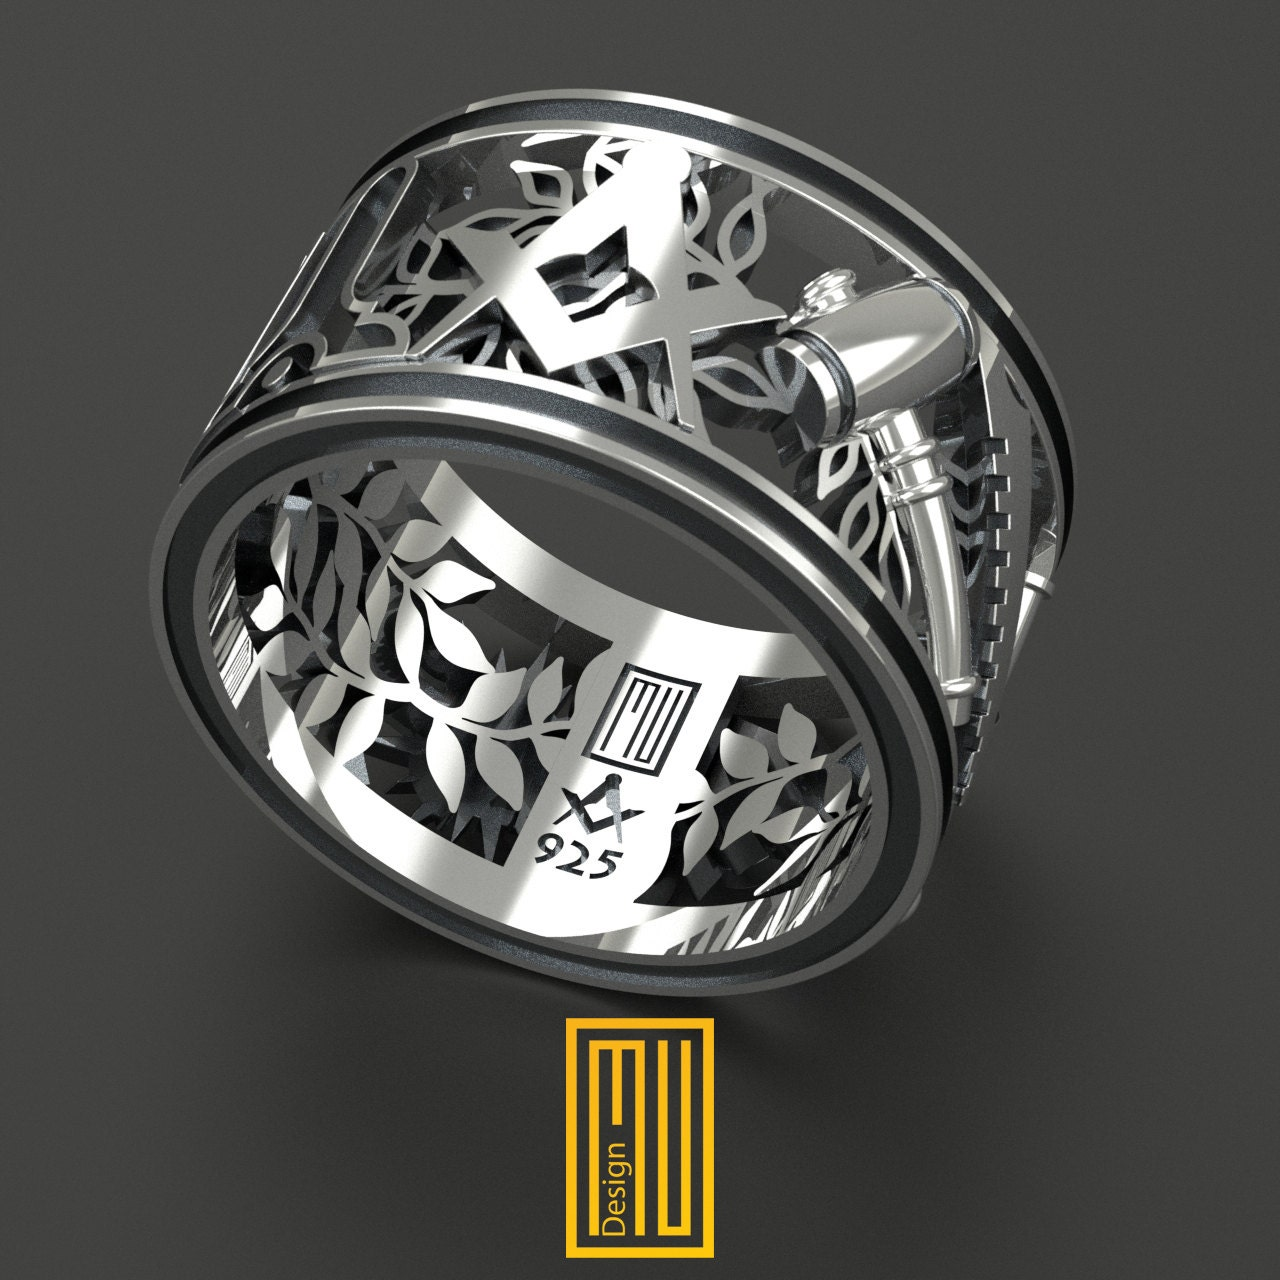 masonic wedding band style ring 925k sterling silver or With masonic wedding rings